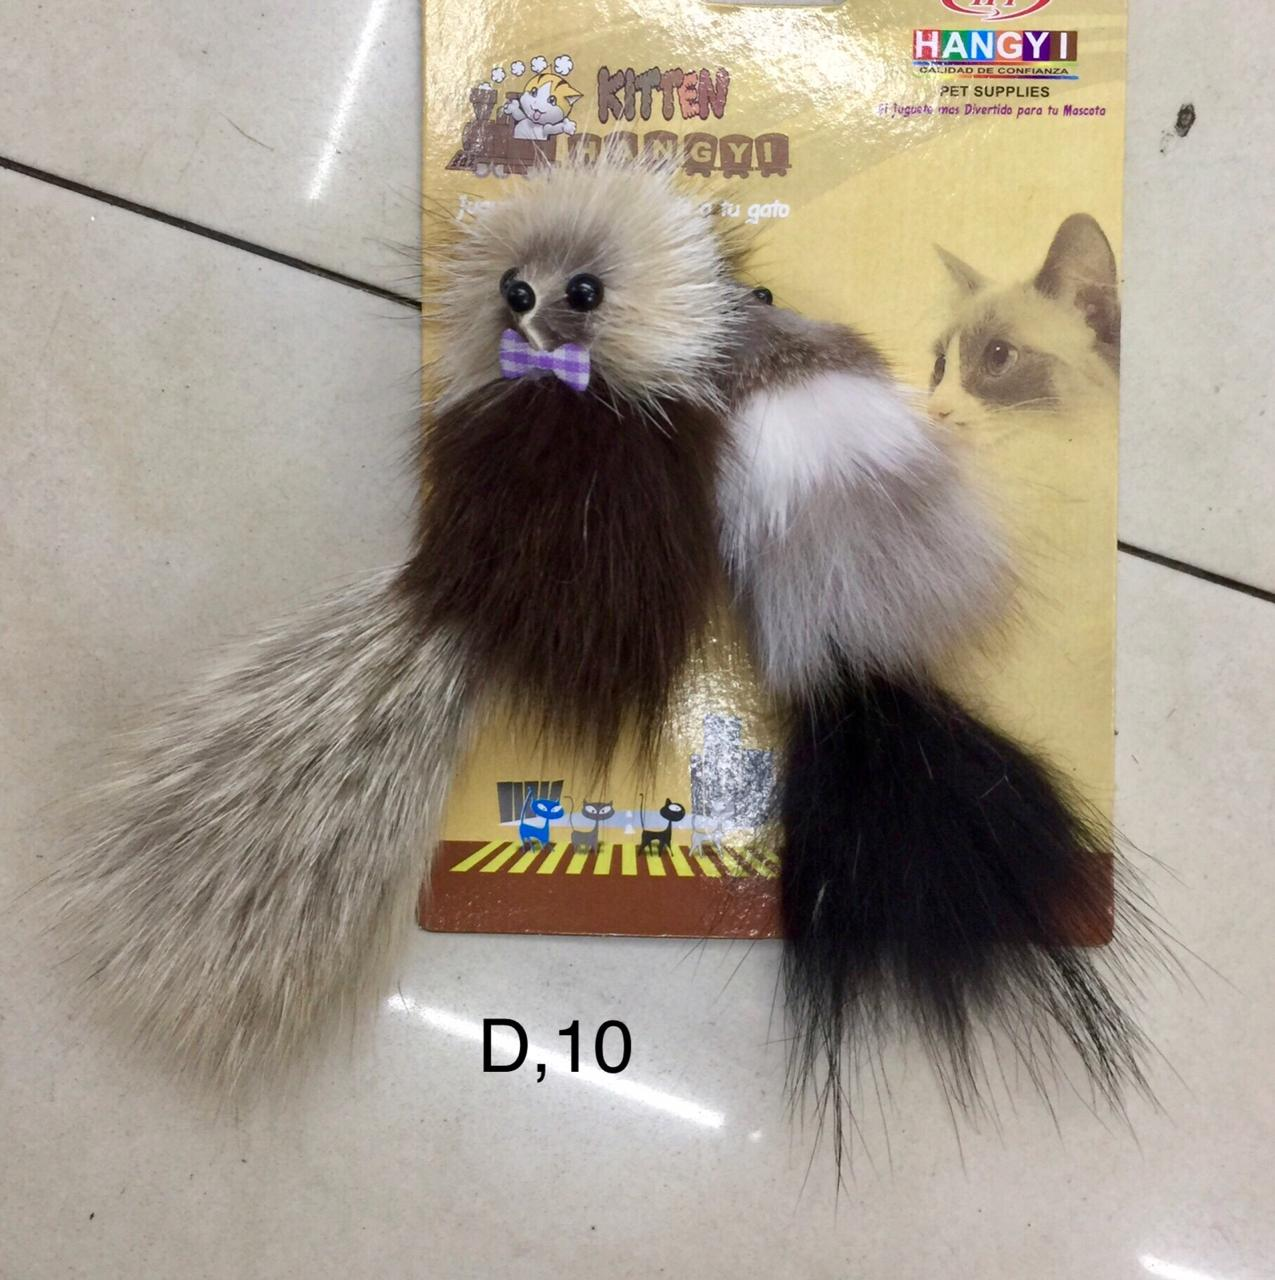 Toy Tripple Mouse For Cats And Kittens